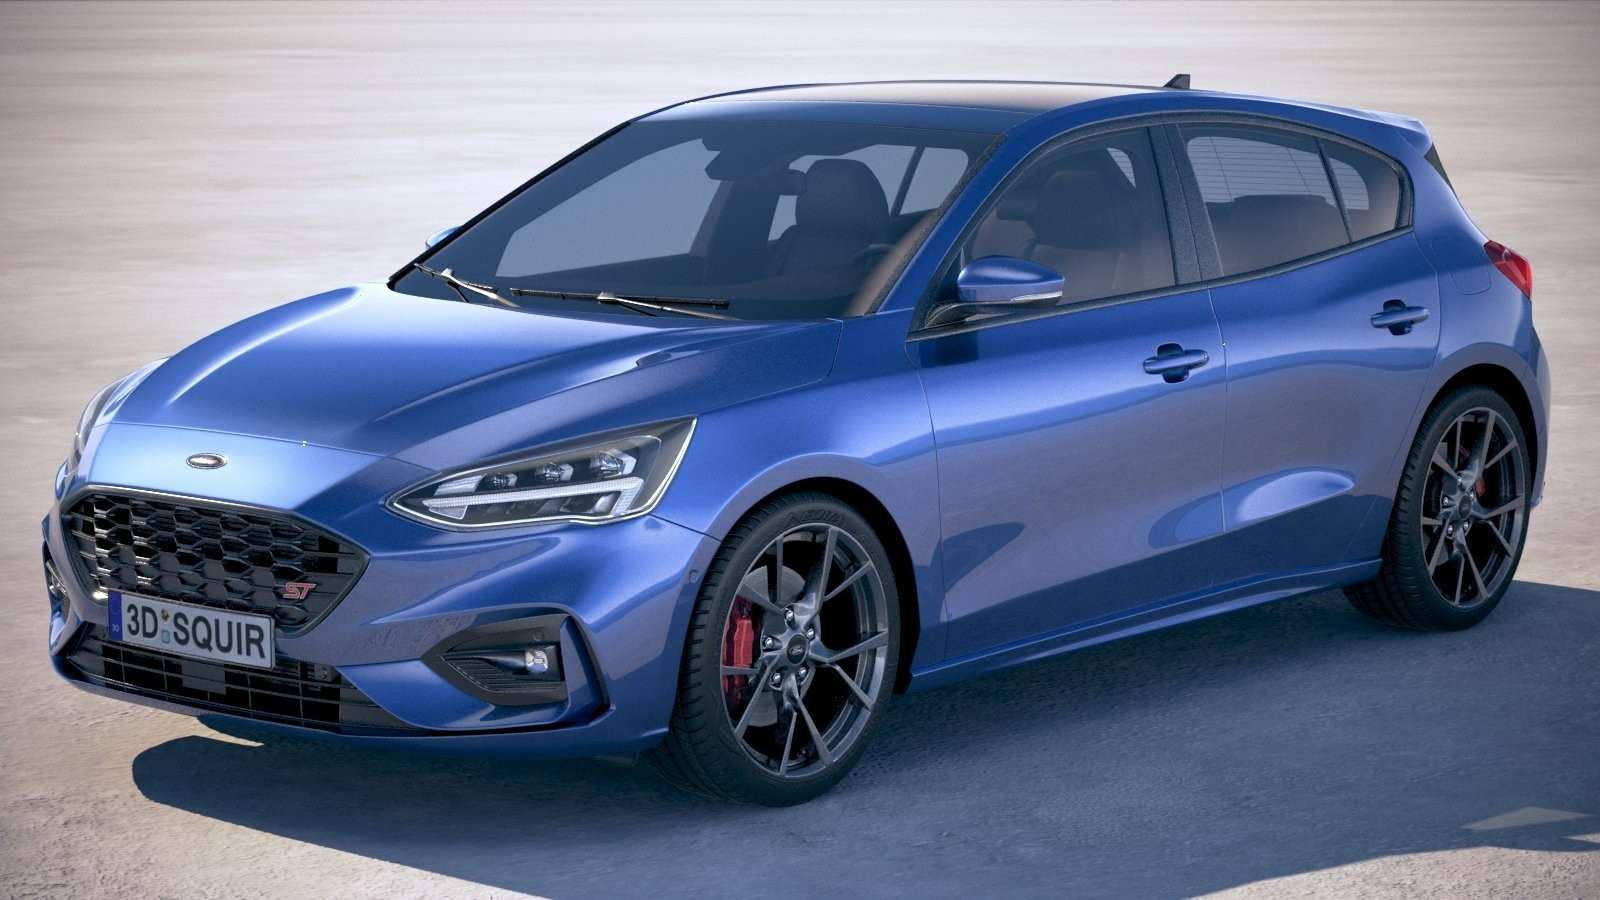 40 Best Ford Focus St 2020 New Review